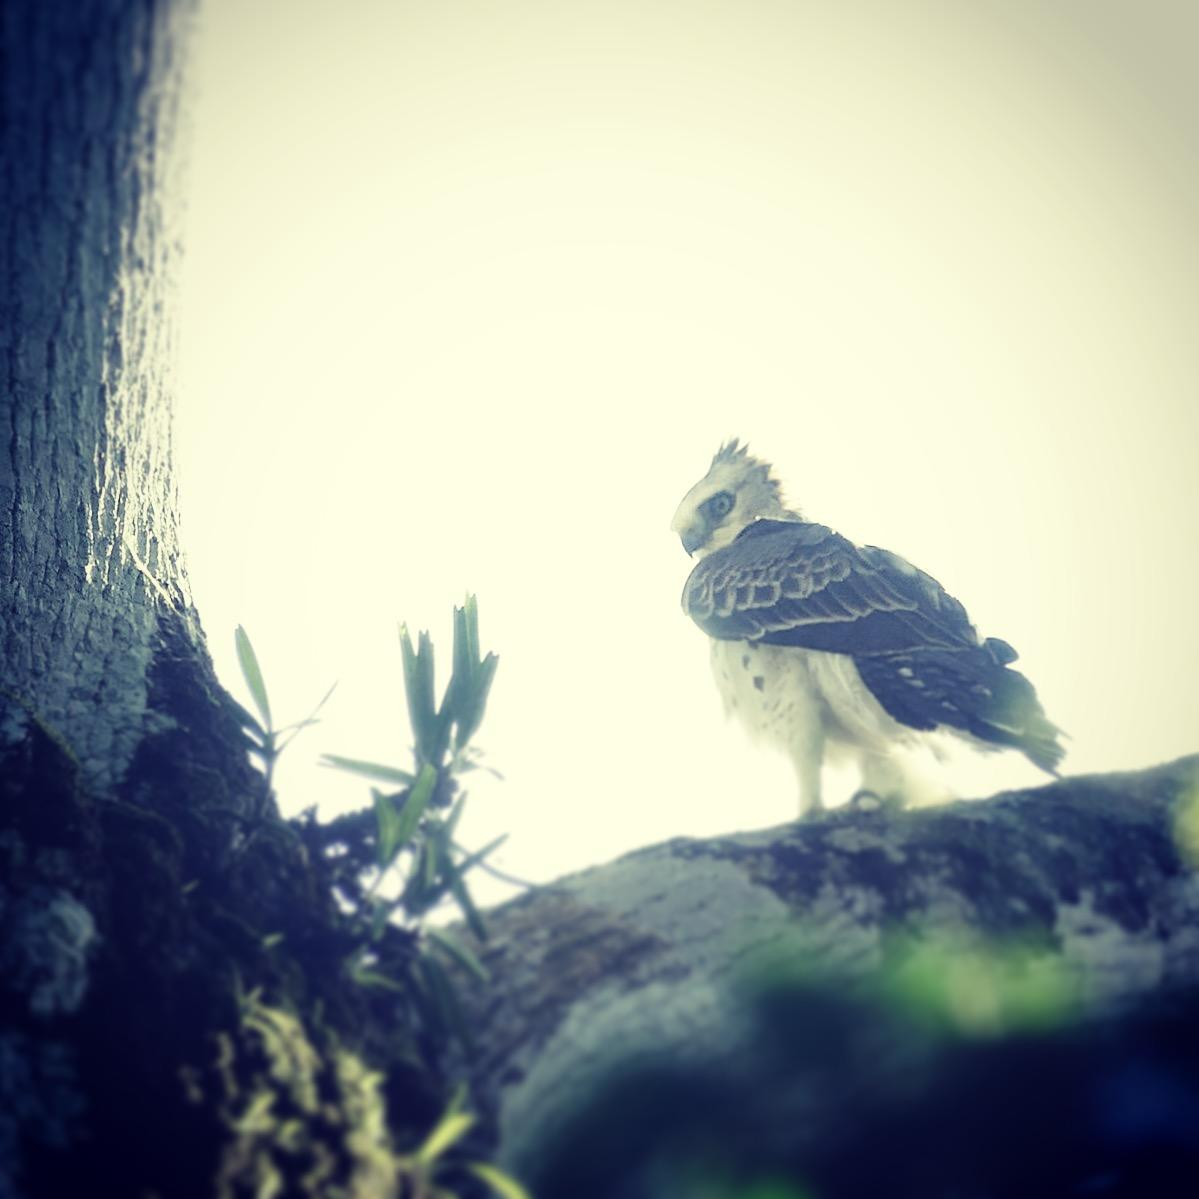 Noah's view of an Ayres's Hawk-Eagle at the Atewa forest reserve. Noah Strycker